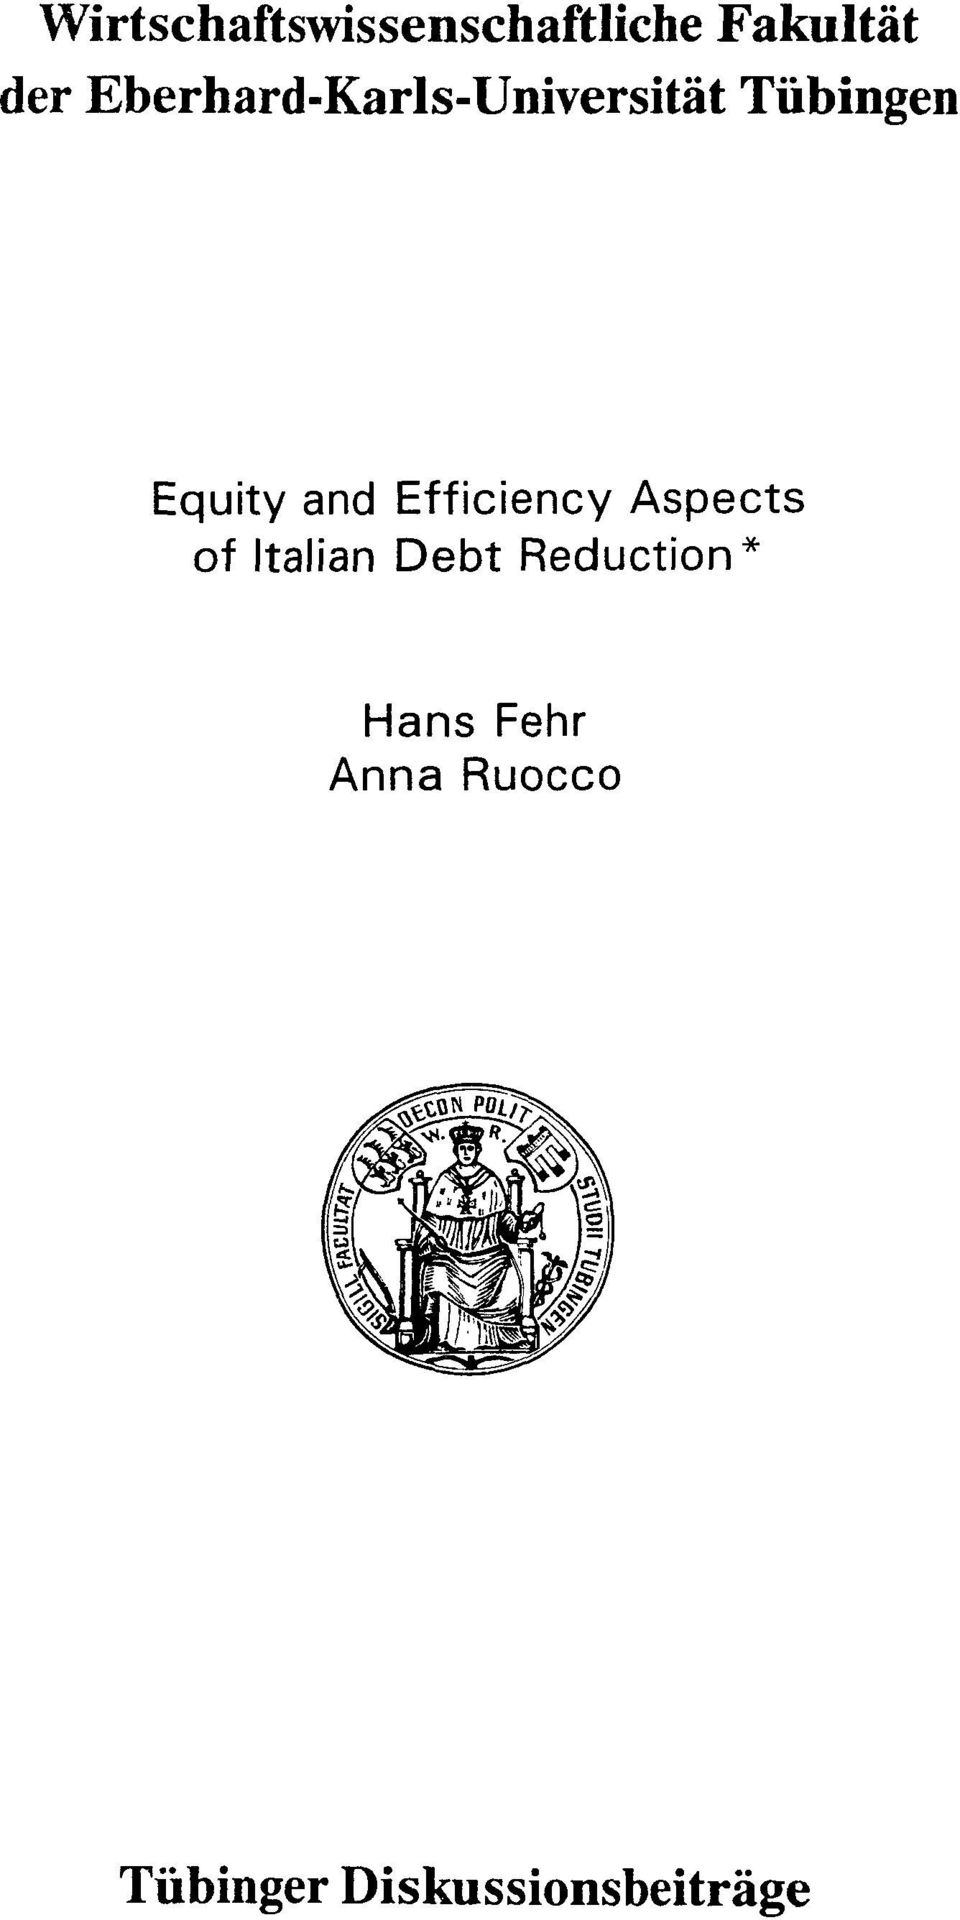 Efficiency Aspects of Italian Debt Reduction*